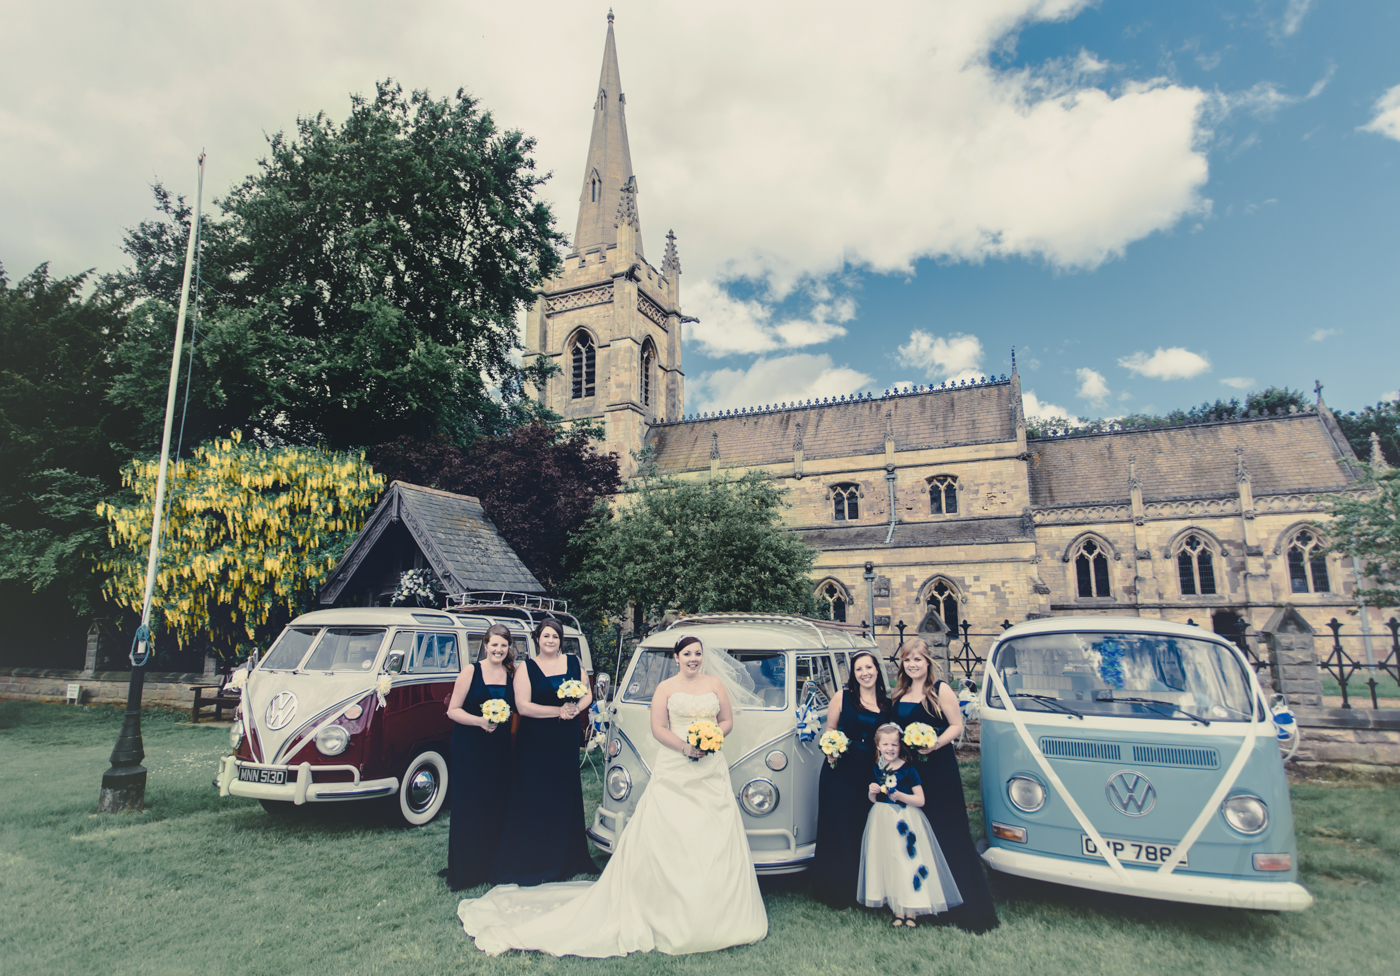 262 - Chris and Natalies Wedding (MAIN) - DO NOT SHARE THIS IMAGES ONLINE -0333.JPG